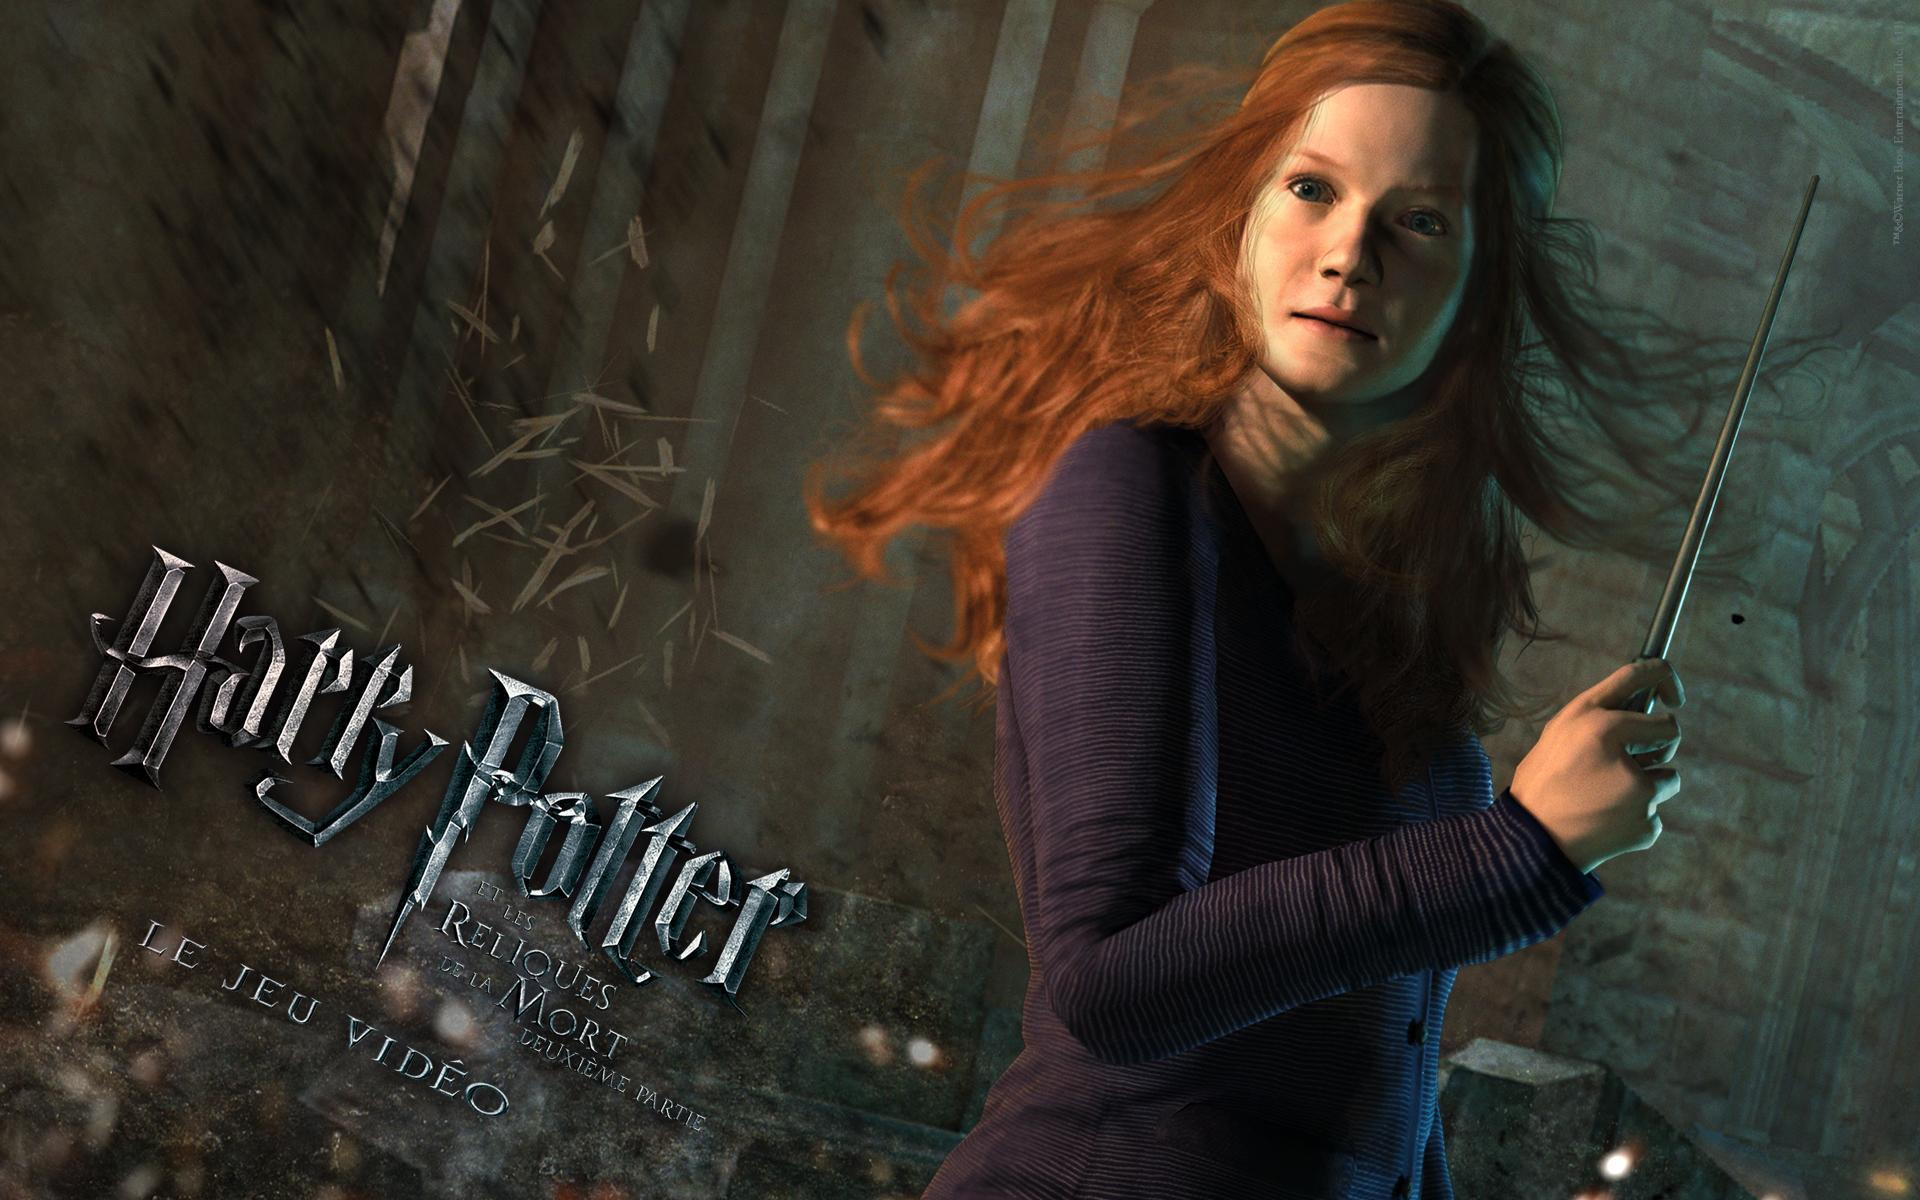 Ginny Deathly Hallows VG Wallpaper   Harry Potter Photo 22707324 1920x1200